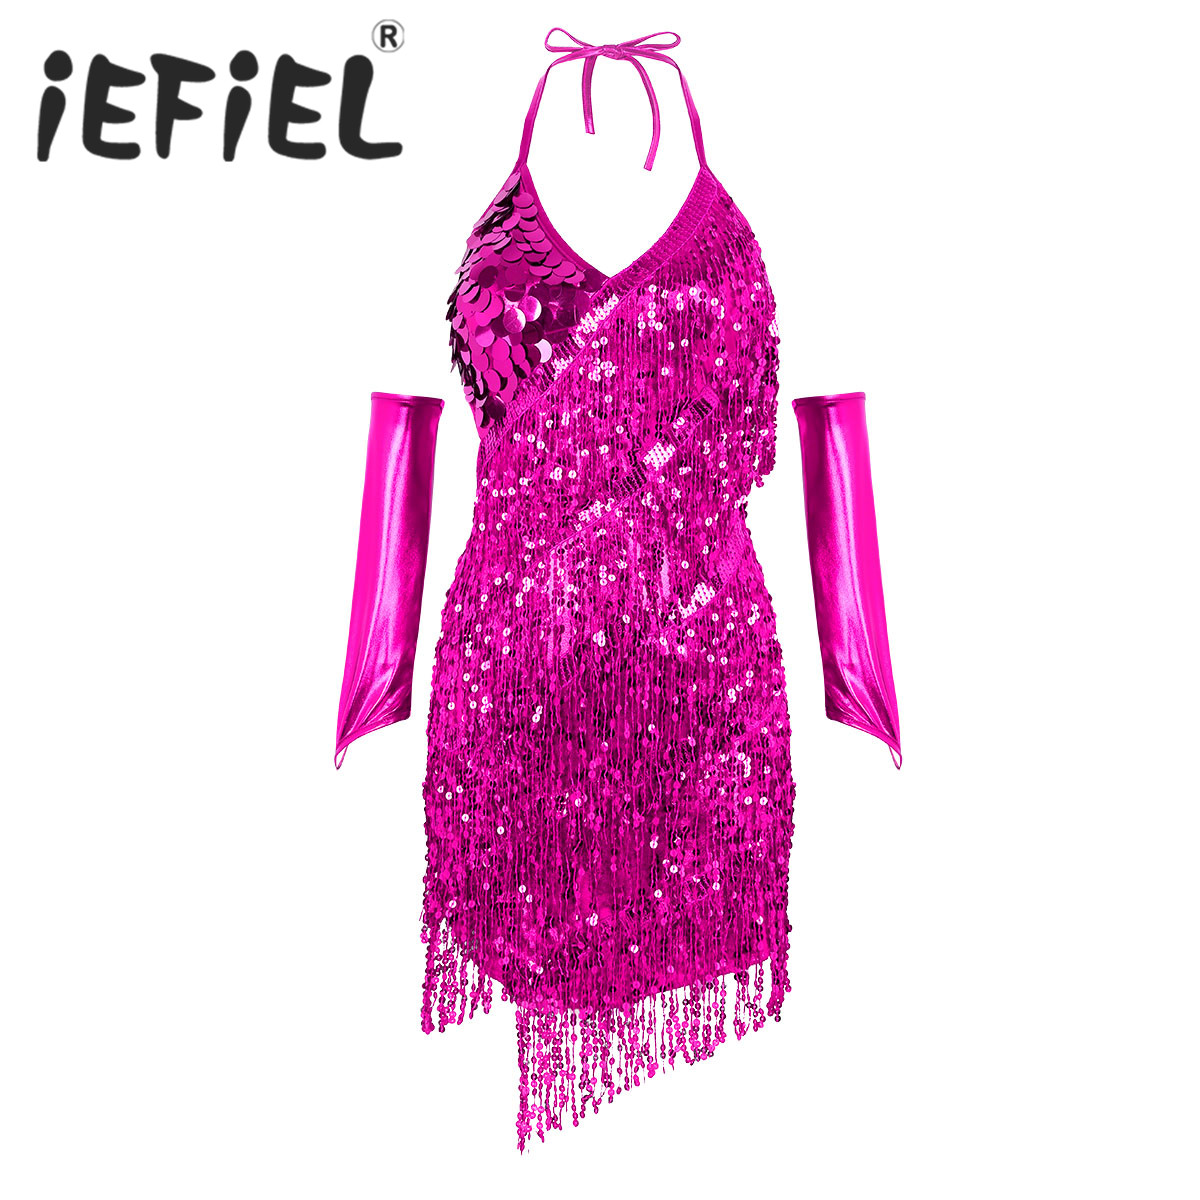 Adults Women Sparkling Sequined Sexy Latin Dance Dress with a Pair of Hand Sleeves for Stage Performance Ballet Tutu Dancewear